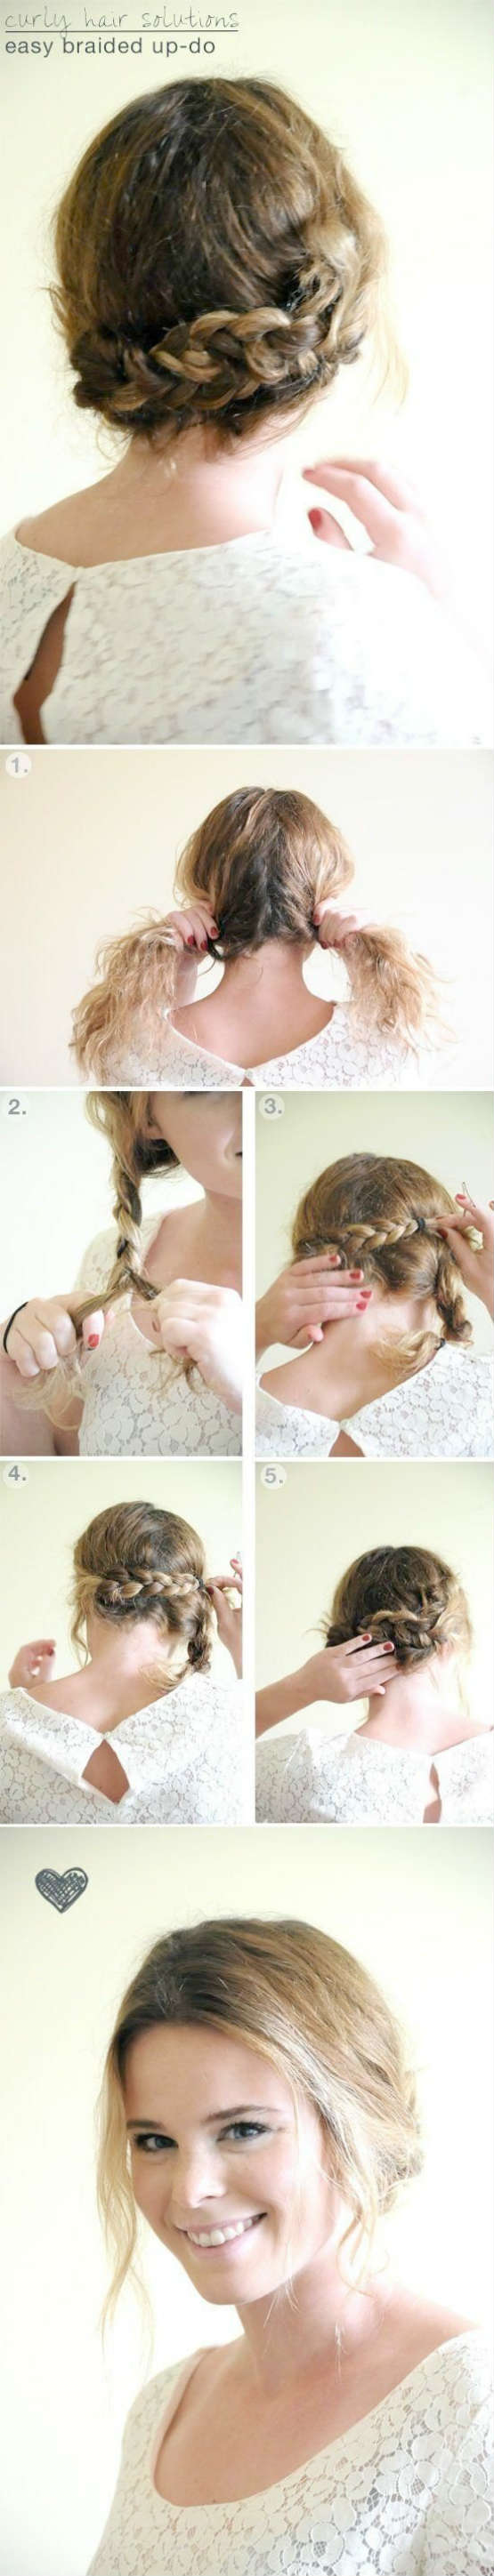 Elegant and easy hair updo tutorial for special occassion